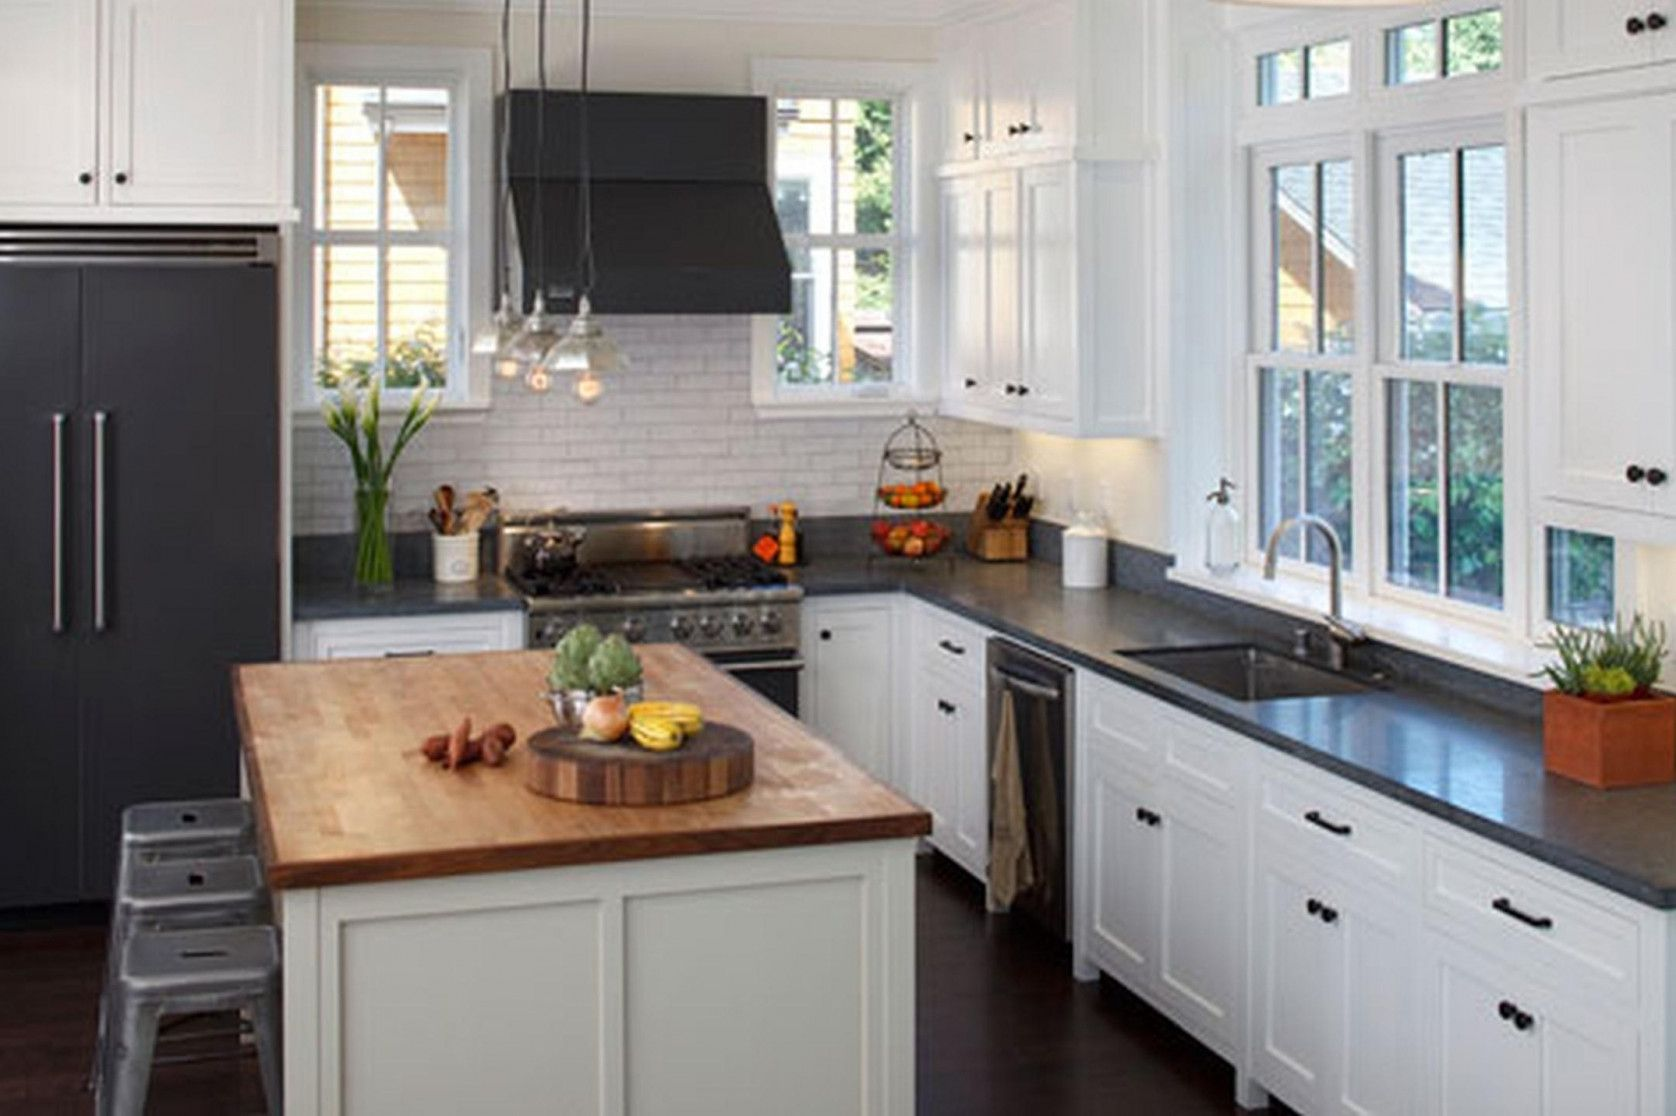 2019 kitchen cabinets near me kitchen island countertop. Black Bedroom Furniture Sets. Home Design Ideas